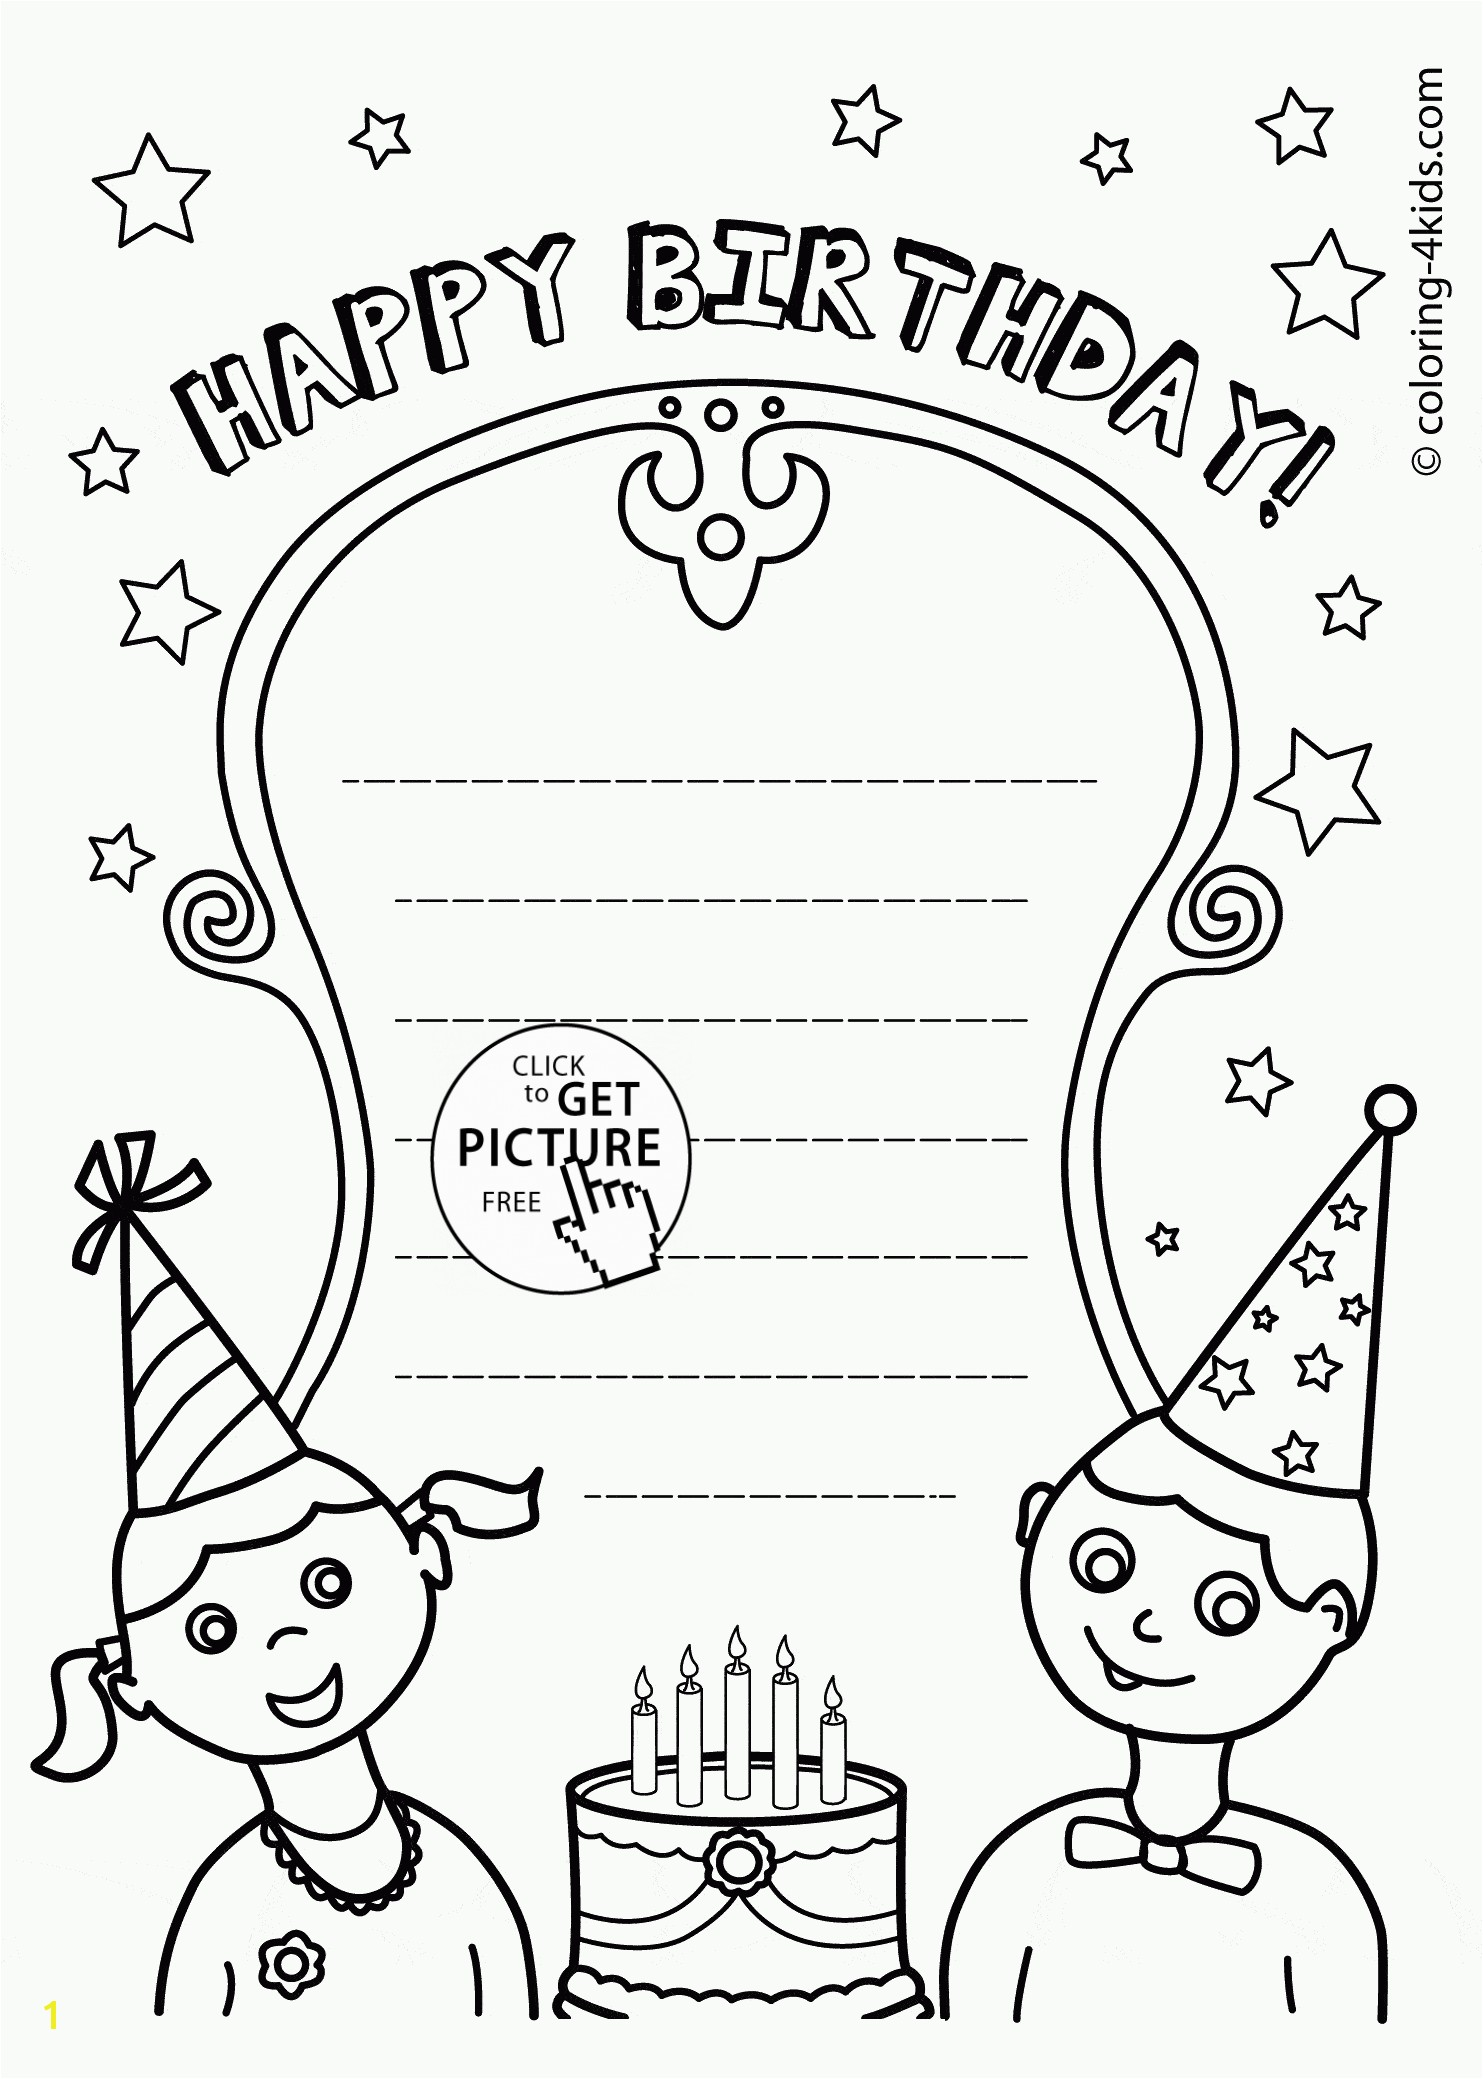 Nice Happy Birthday Card coloring page for kids holiday coloring pages printables free Wuppsy